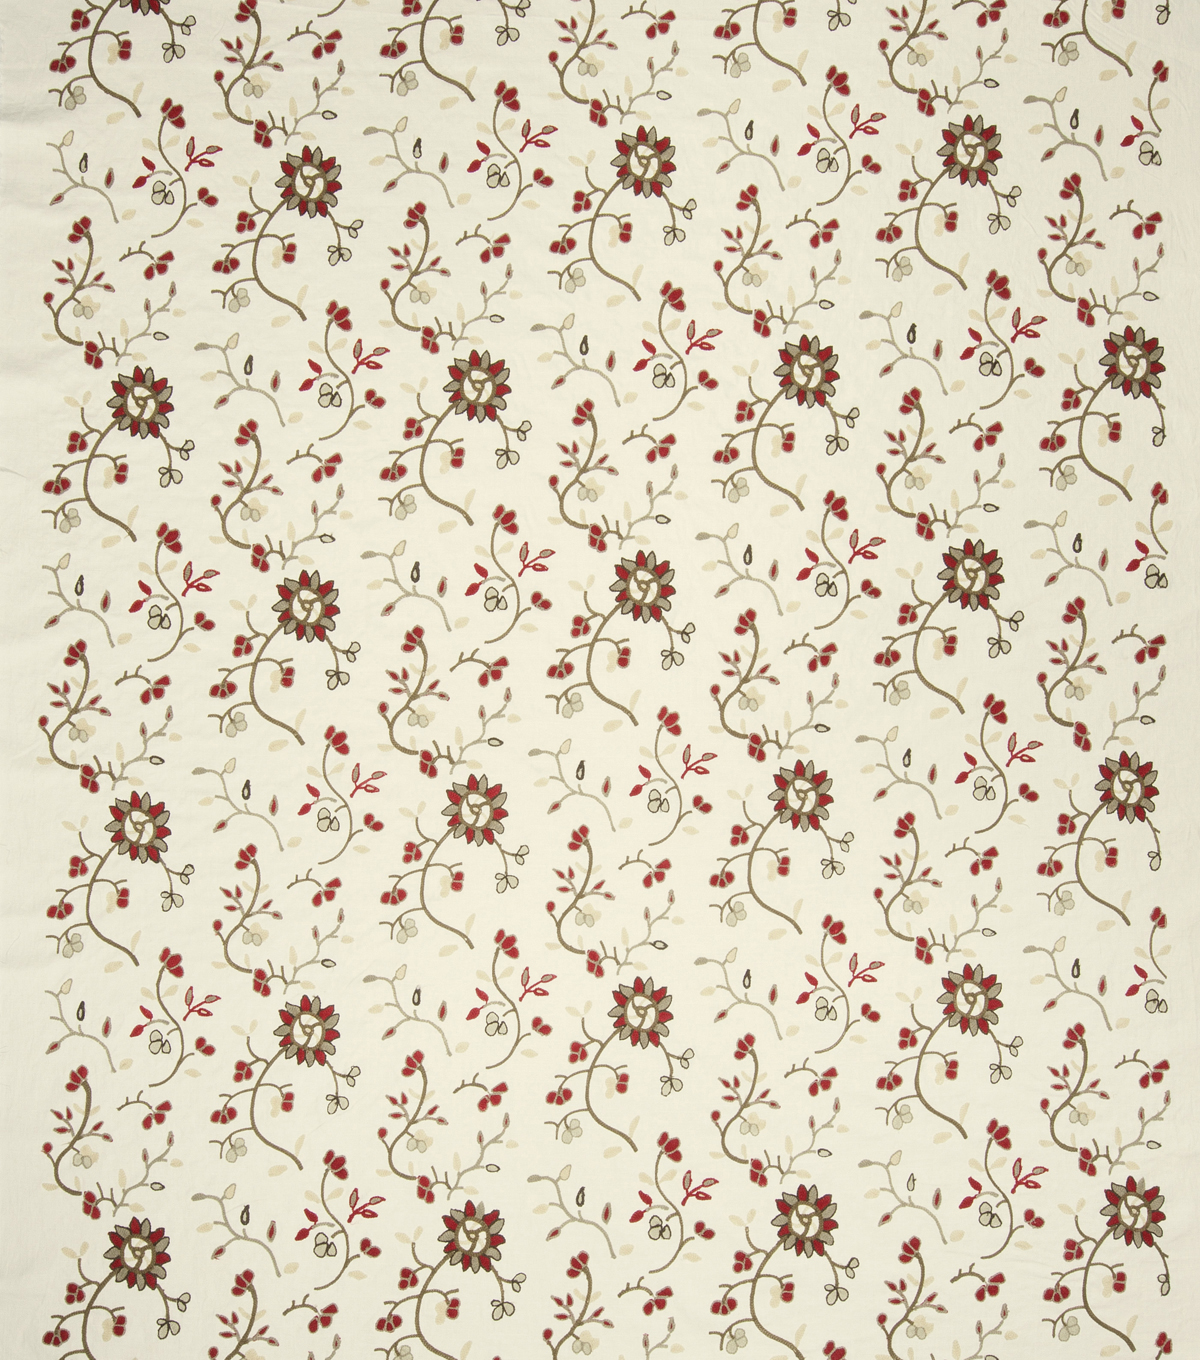 French General Lightweight Decor Fabric 51\u0022-Caspian/Rural Red